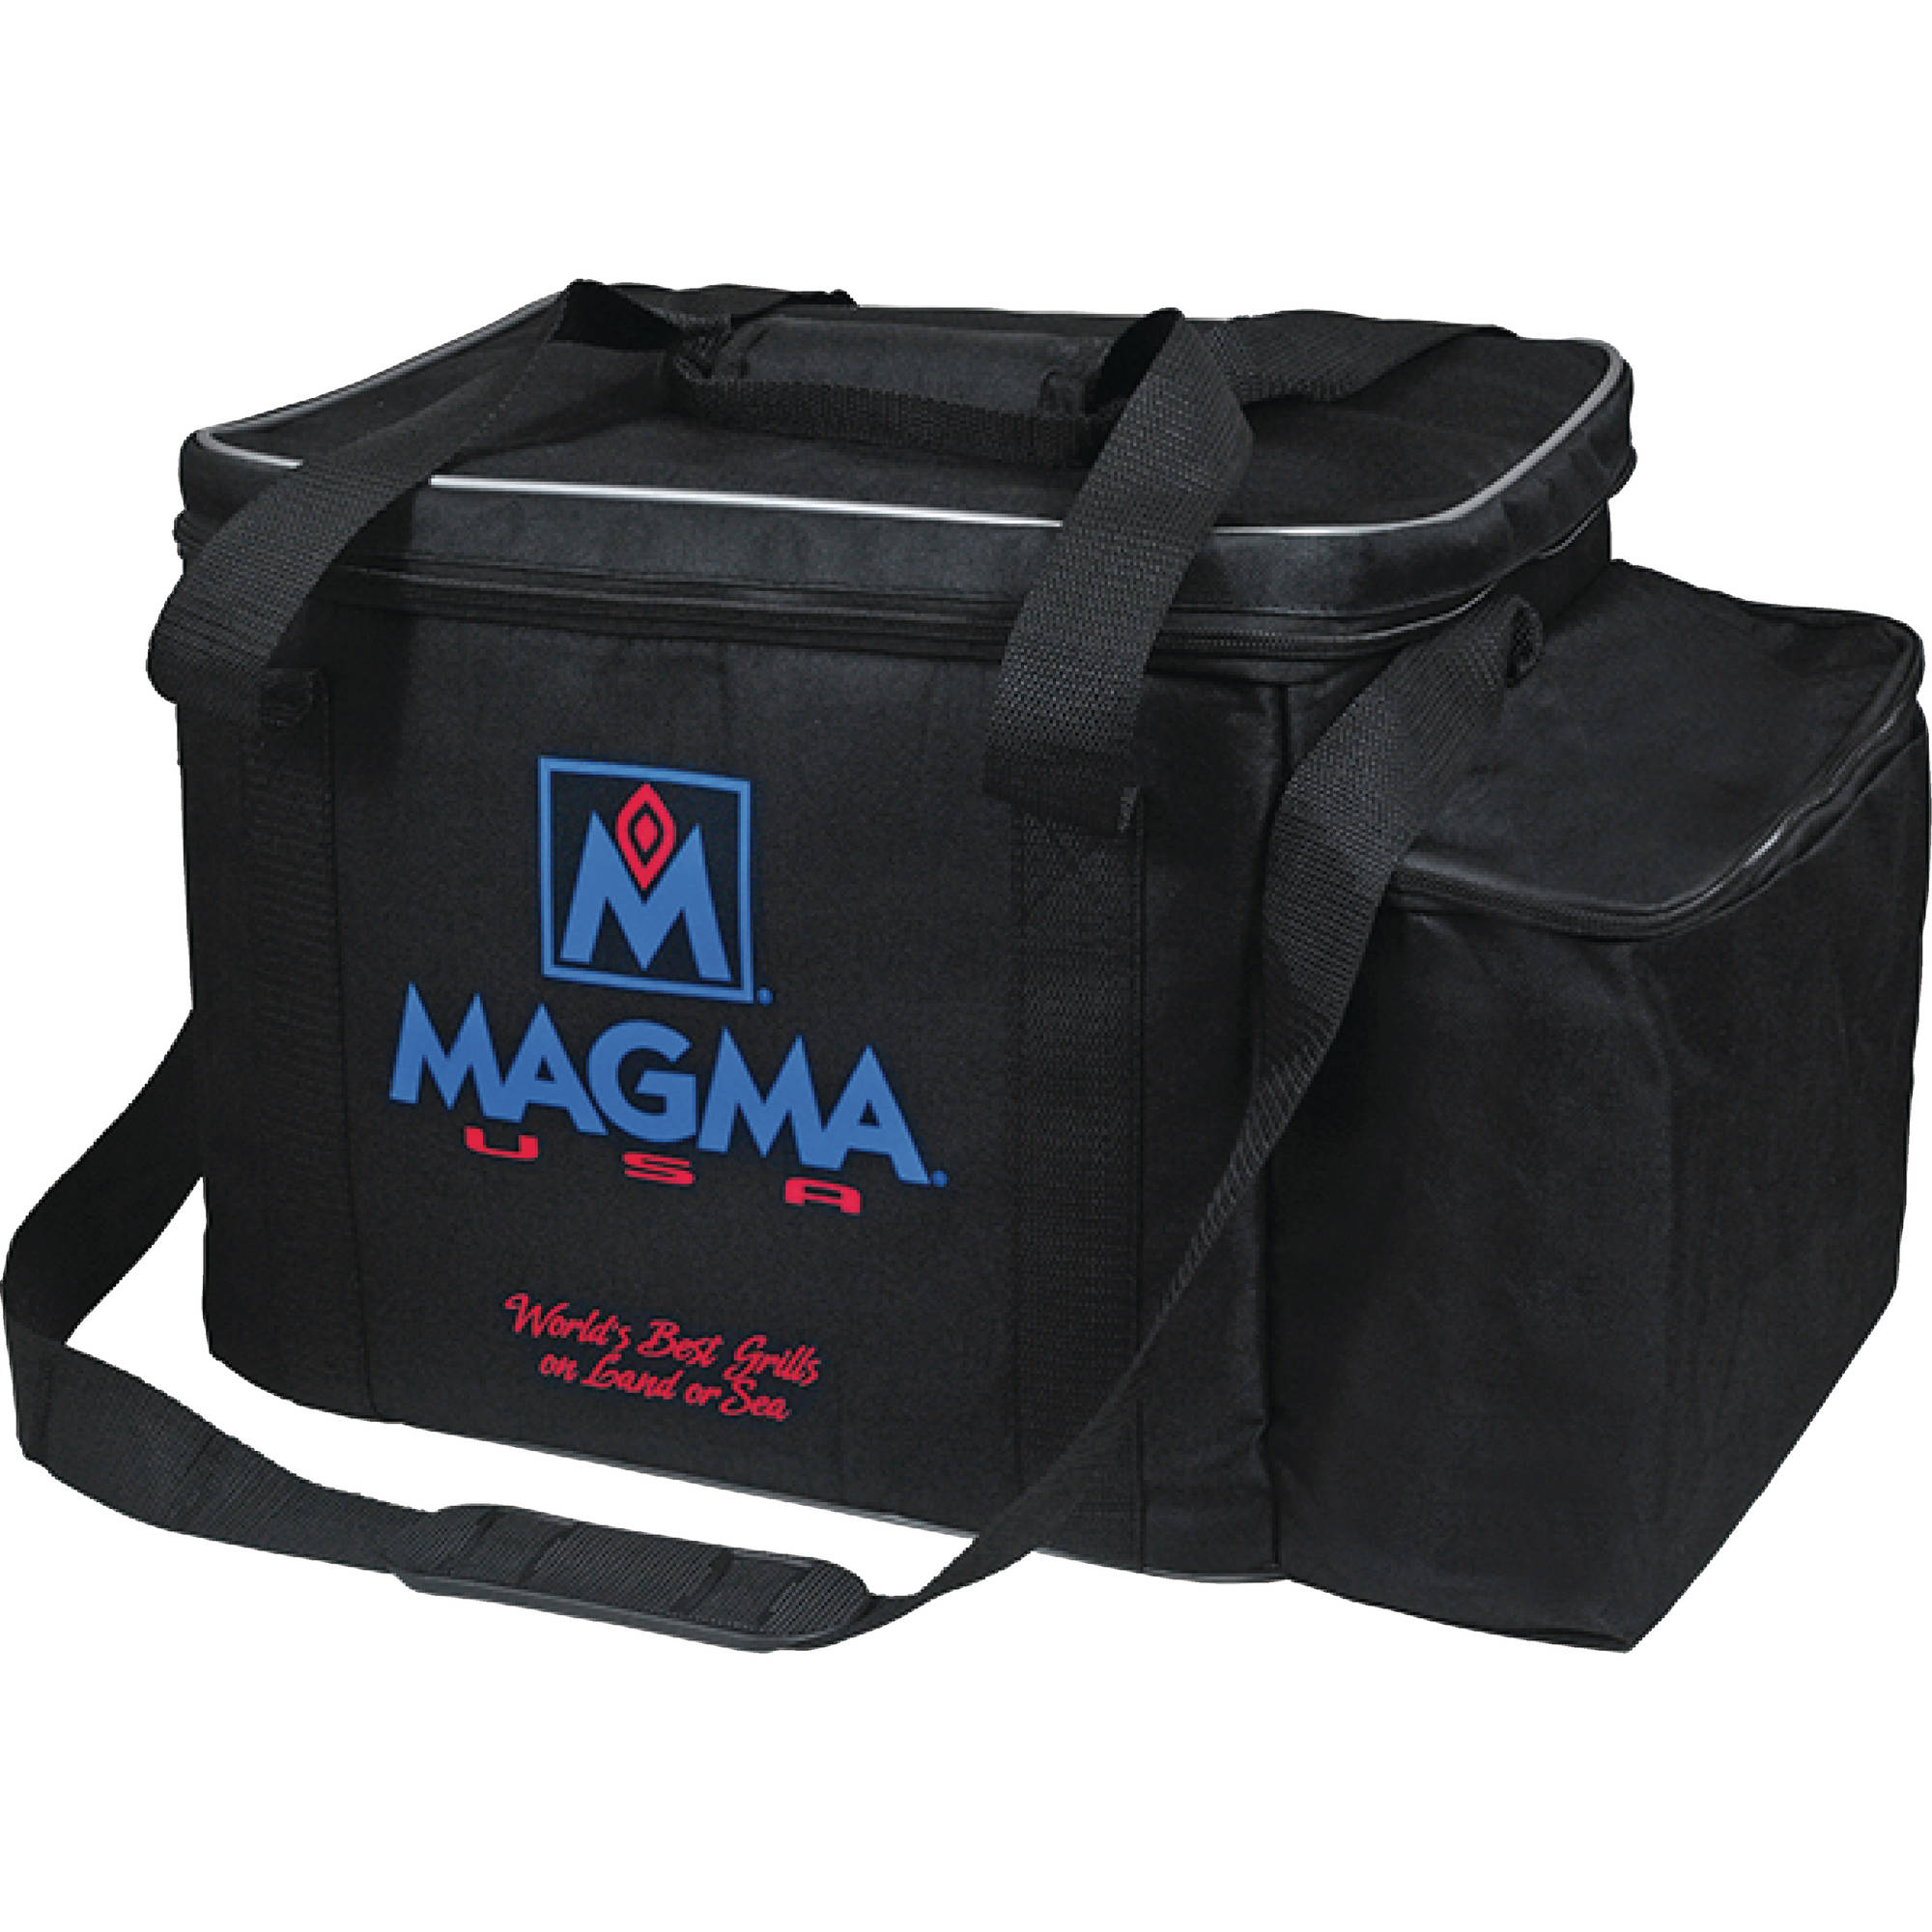 Magma Padded Carry Storage Case Bag for RV Camping Grills by Magma